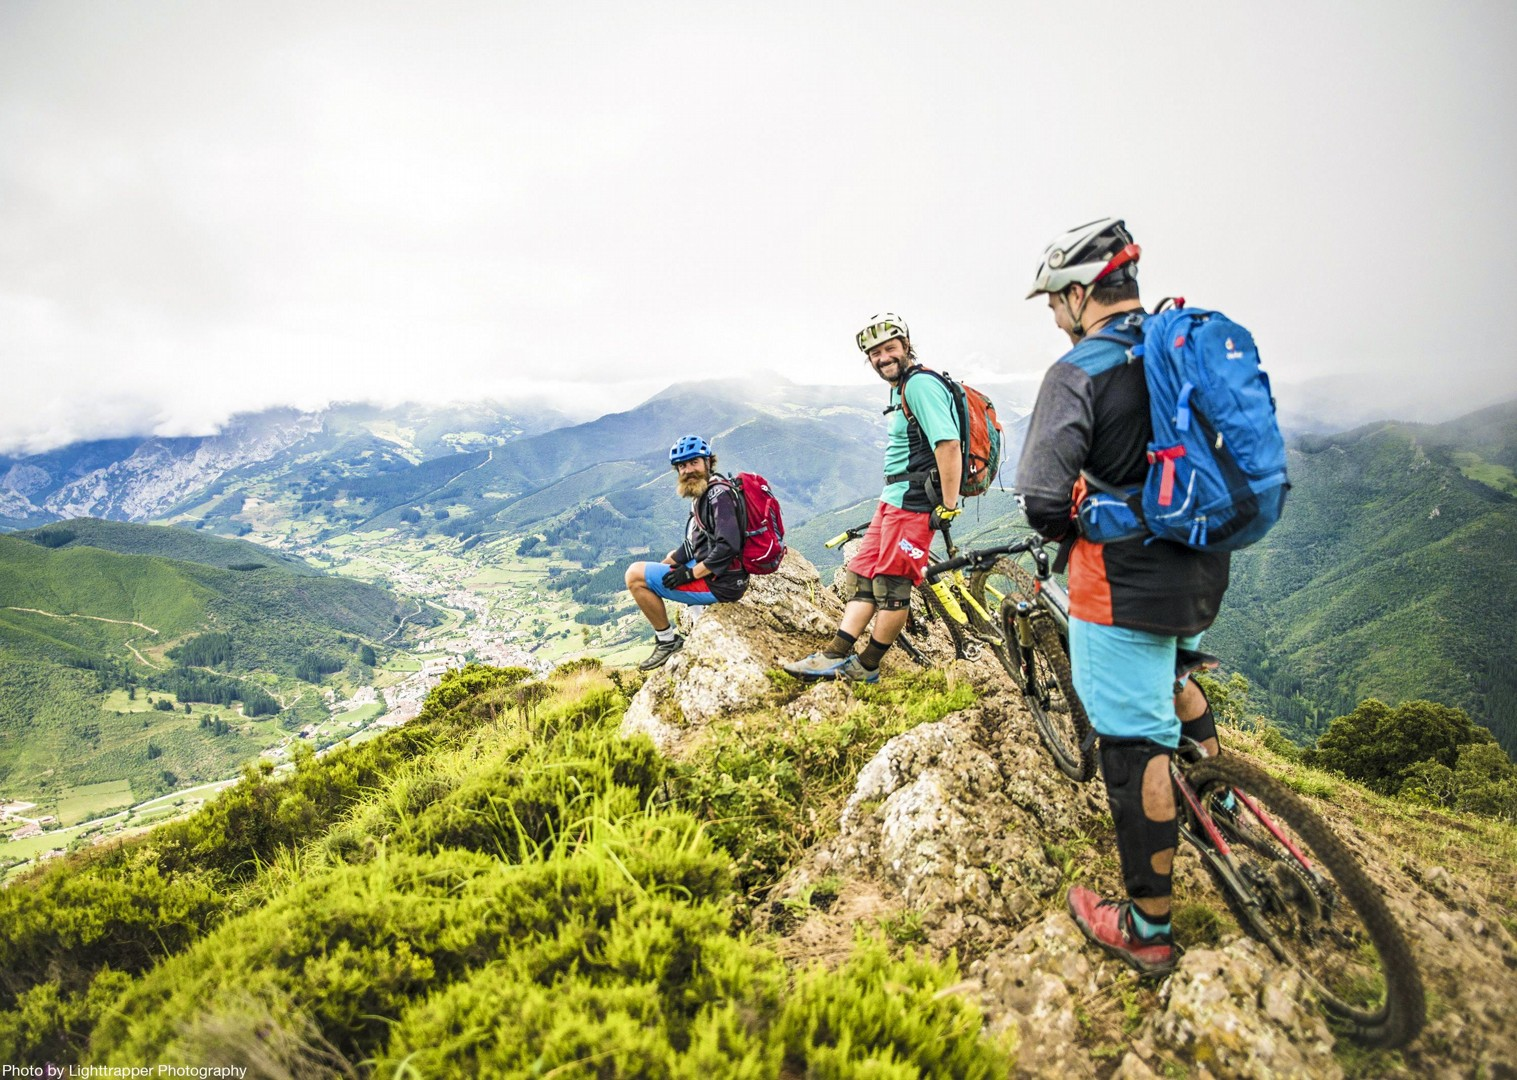 _Holiday.60.20927-2.jpg - Spain - Picos de Europa - Trans Picos - Guided Mountain Bike Holiday - Mountain Biking